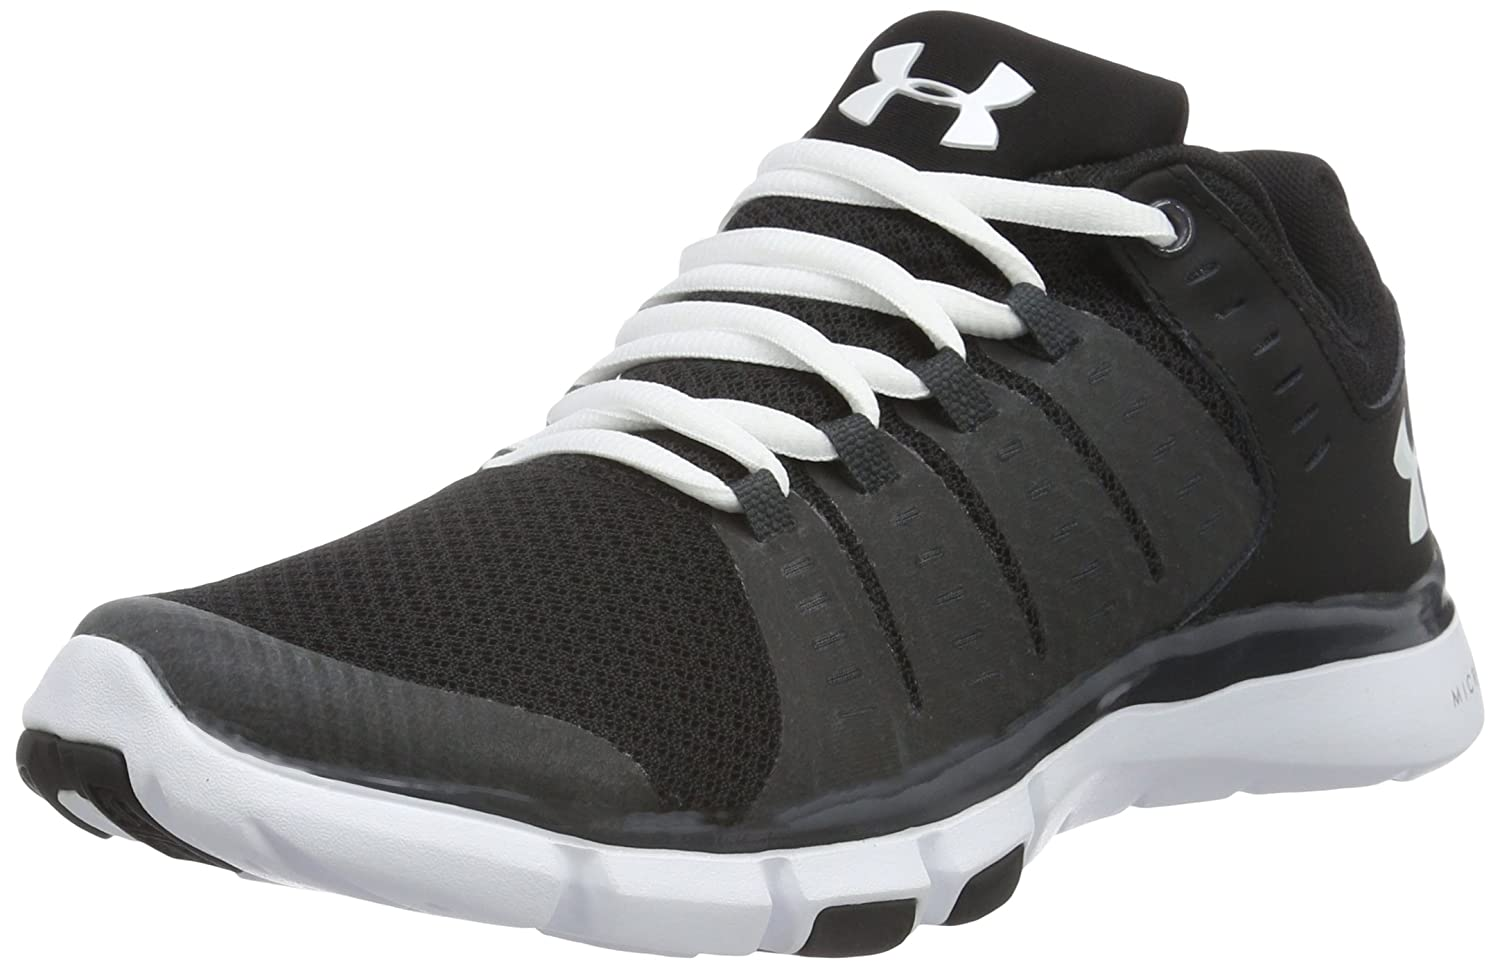 Under Armour Damen Micro G Limitless Training 2 Hallenschuhe  Schwarz (schwarz)